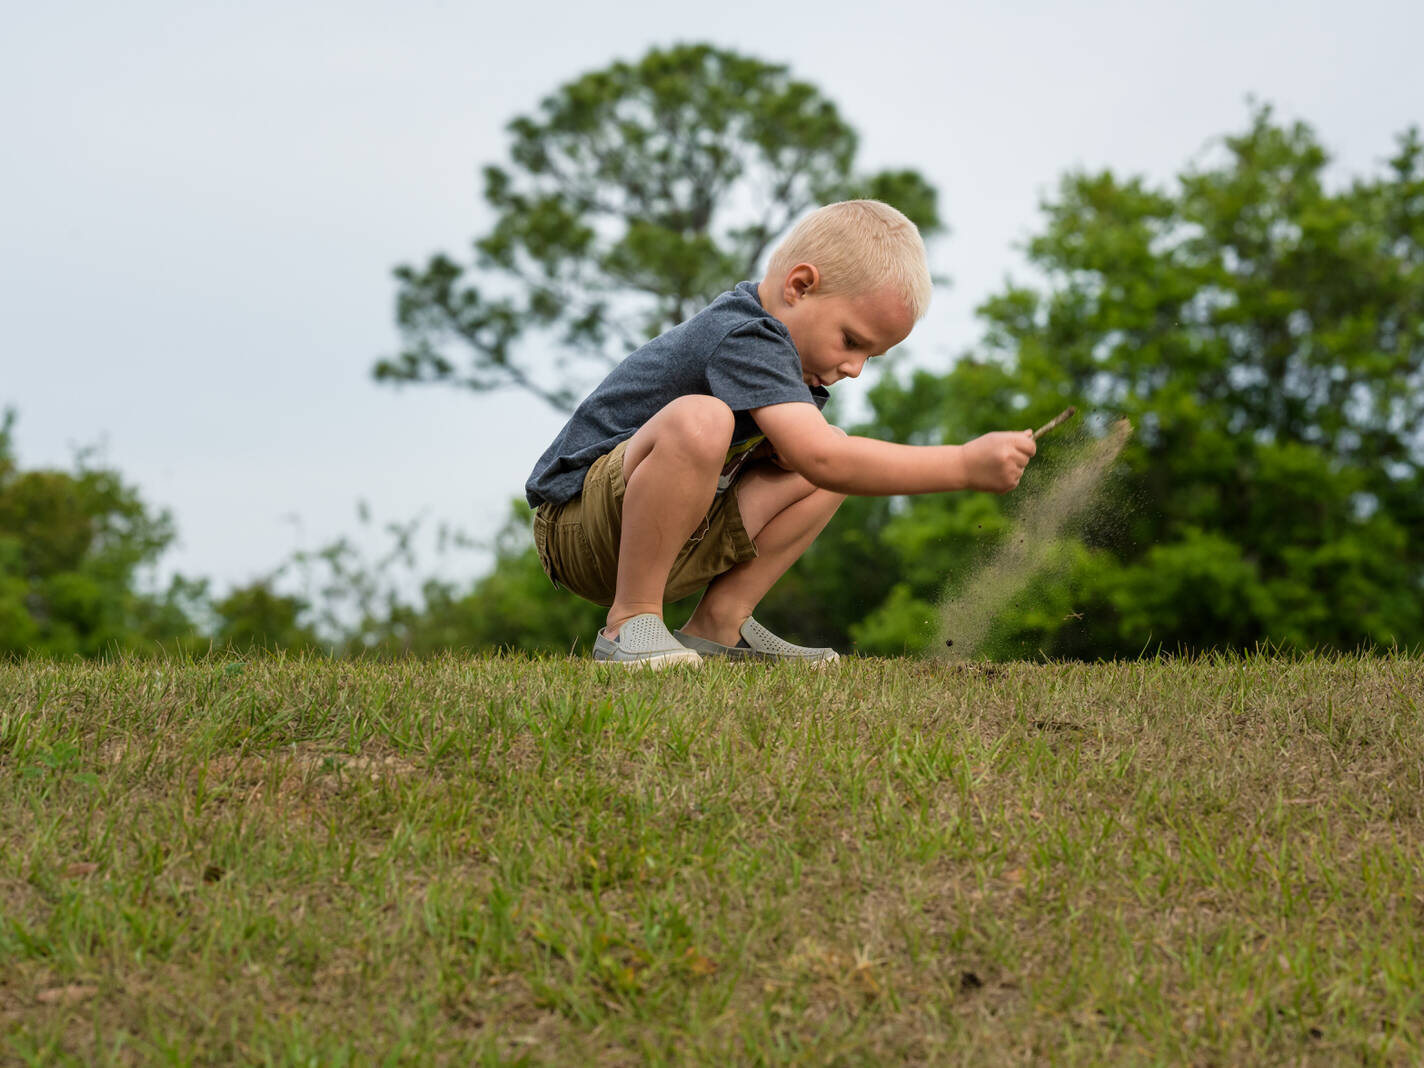 boy launches dirt at the park